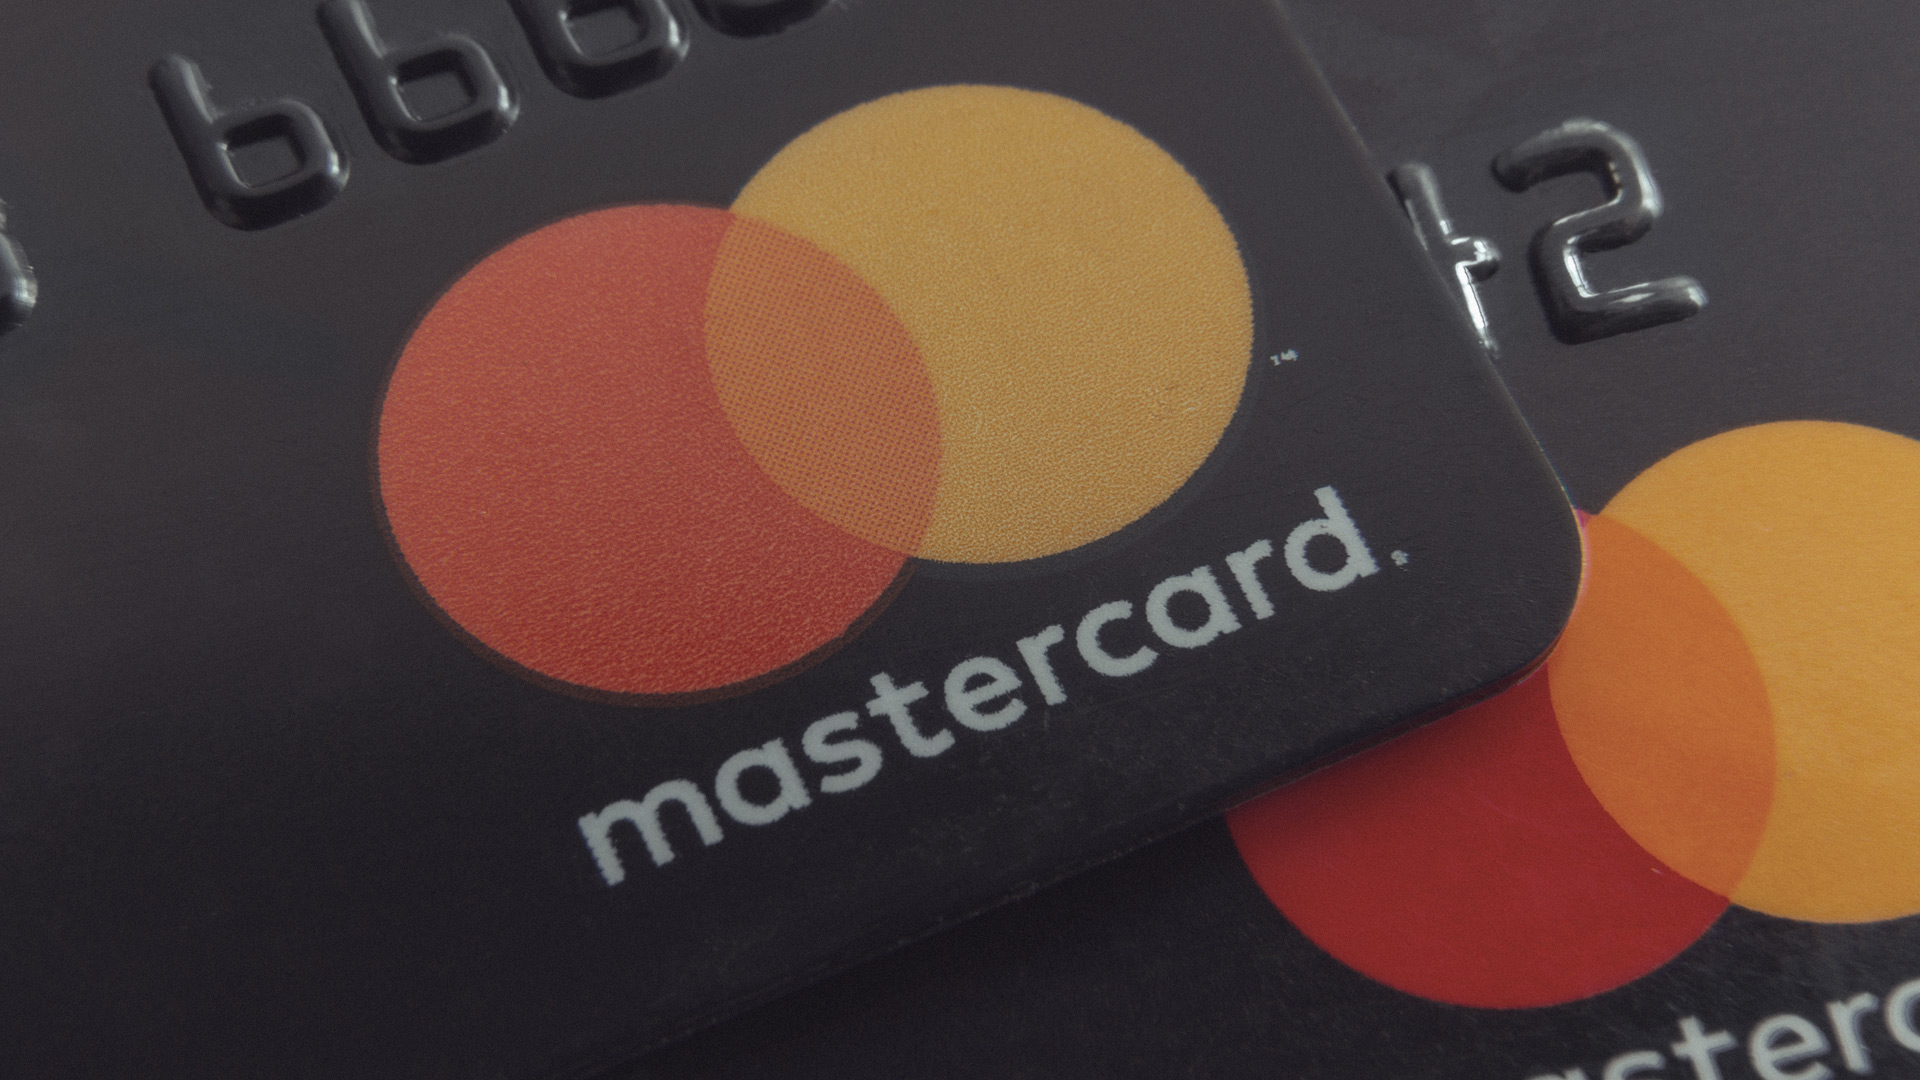 Mastercard is eyeing the crypto wallet space, according to